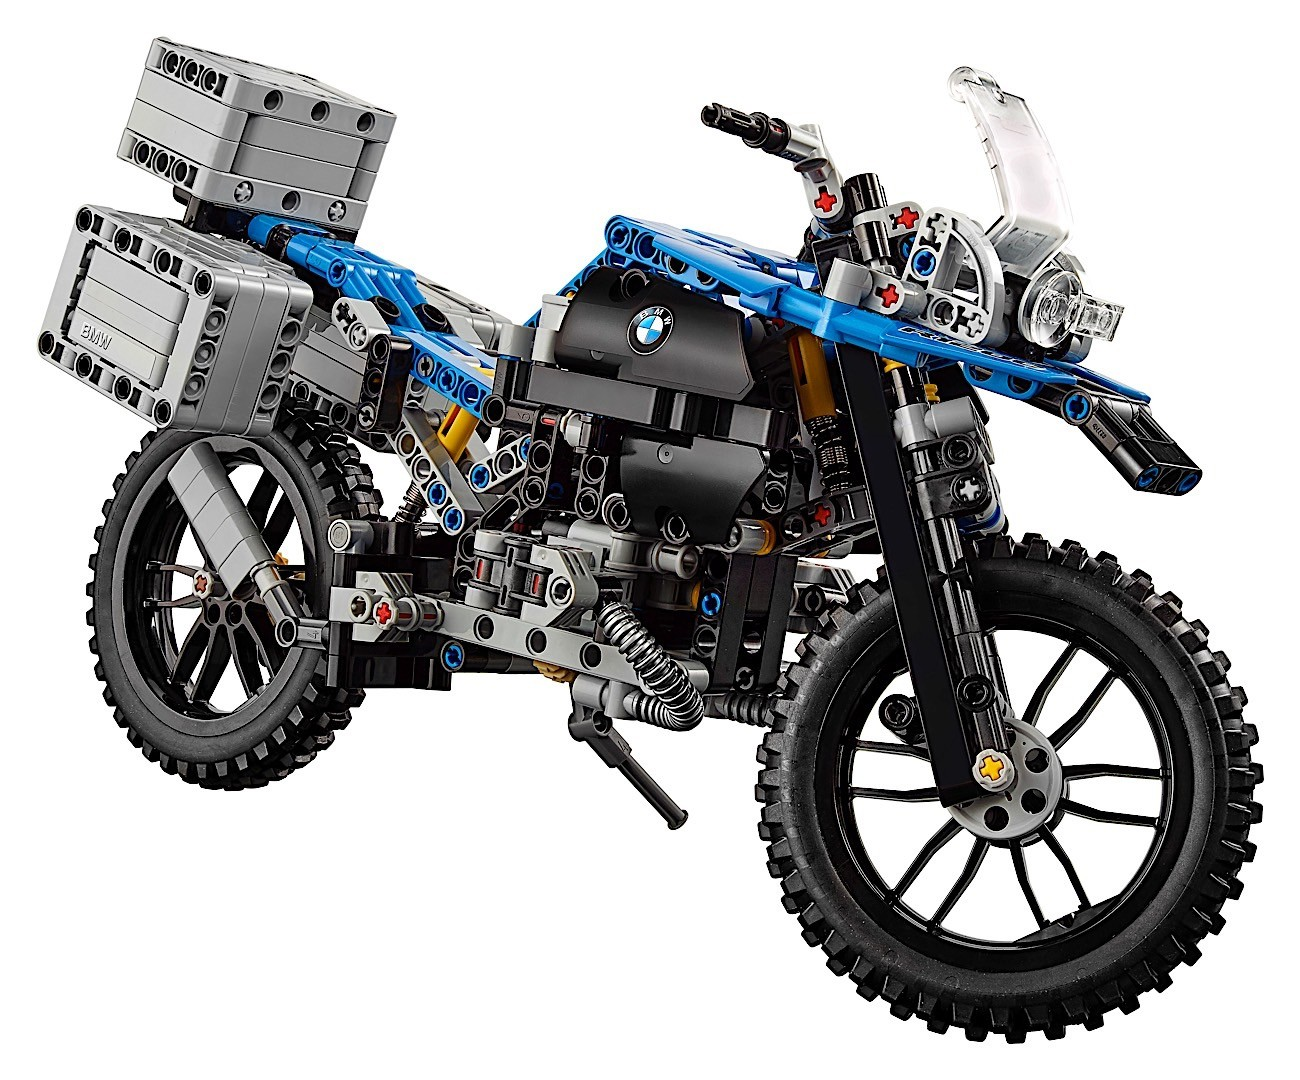 lego bmw r 1200 gs adventure on shelves starting 2017 14